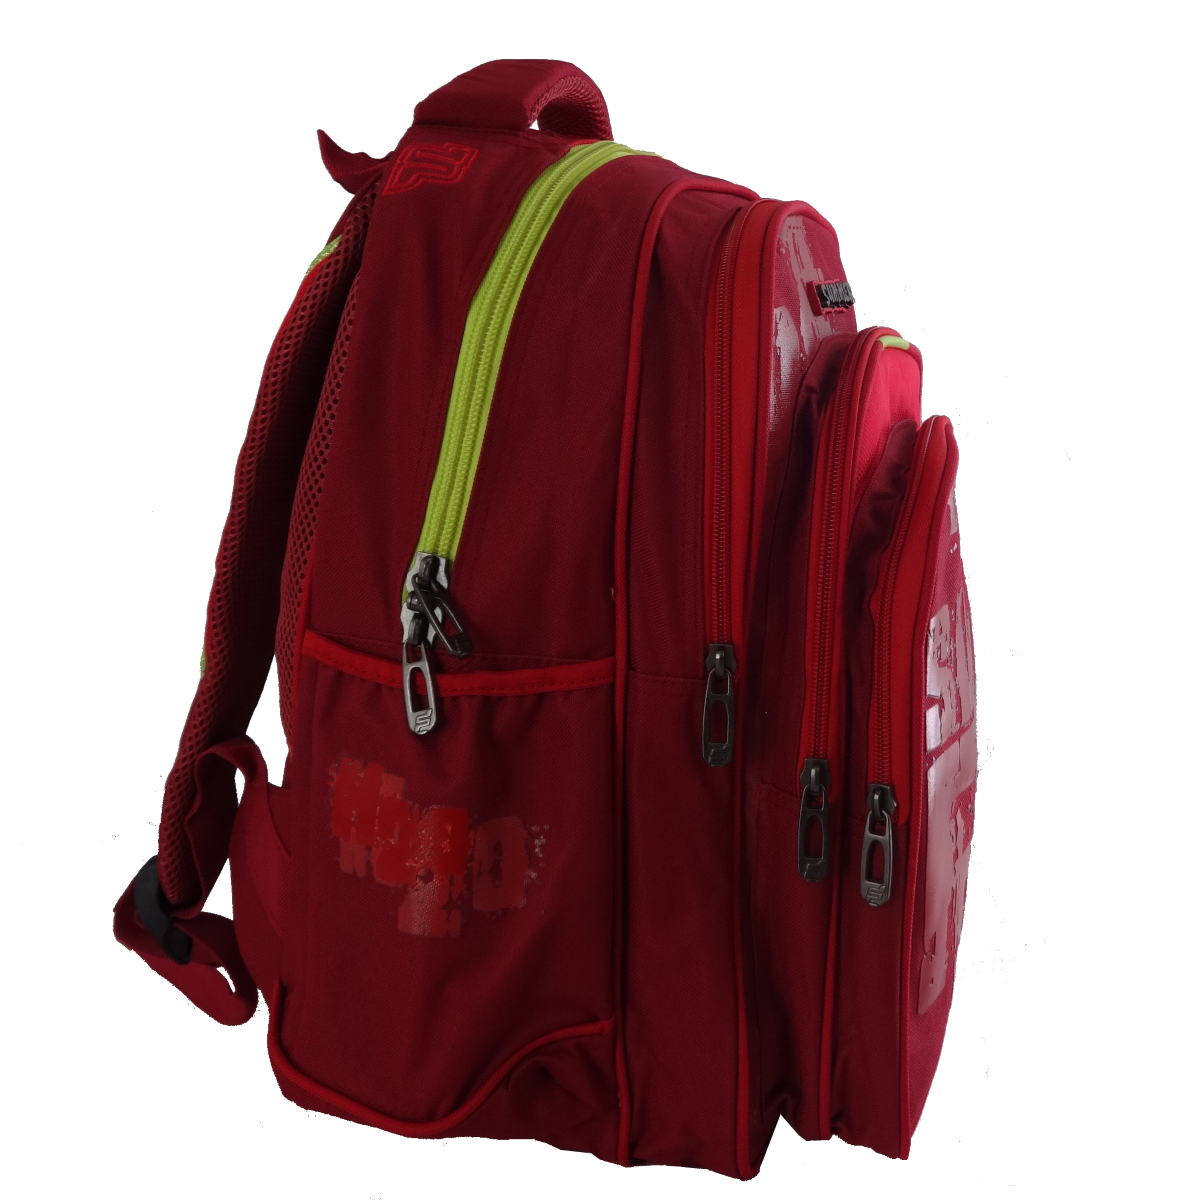 BP-5-637-Red-front (web).png